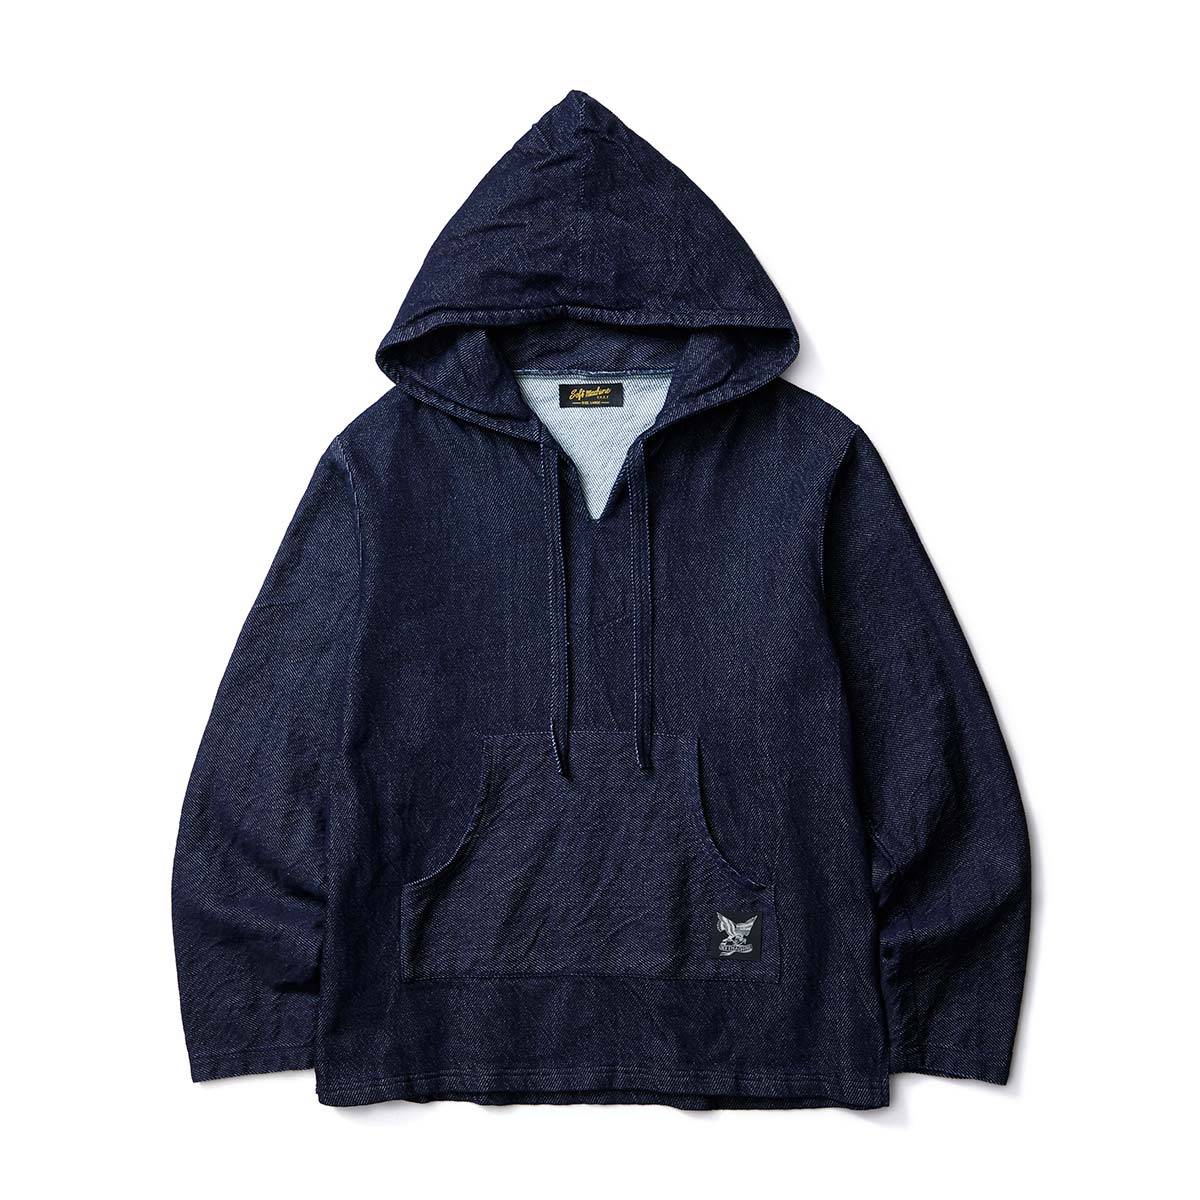 ACAPULCO HOODED